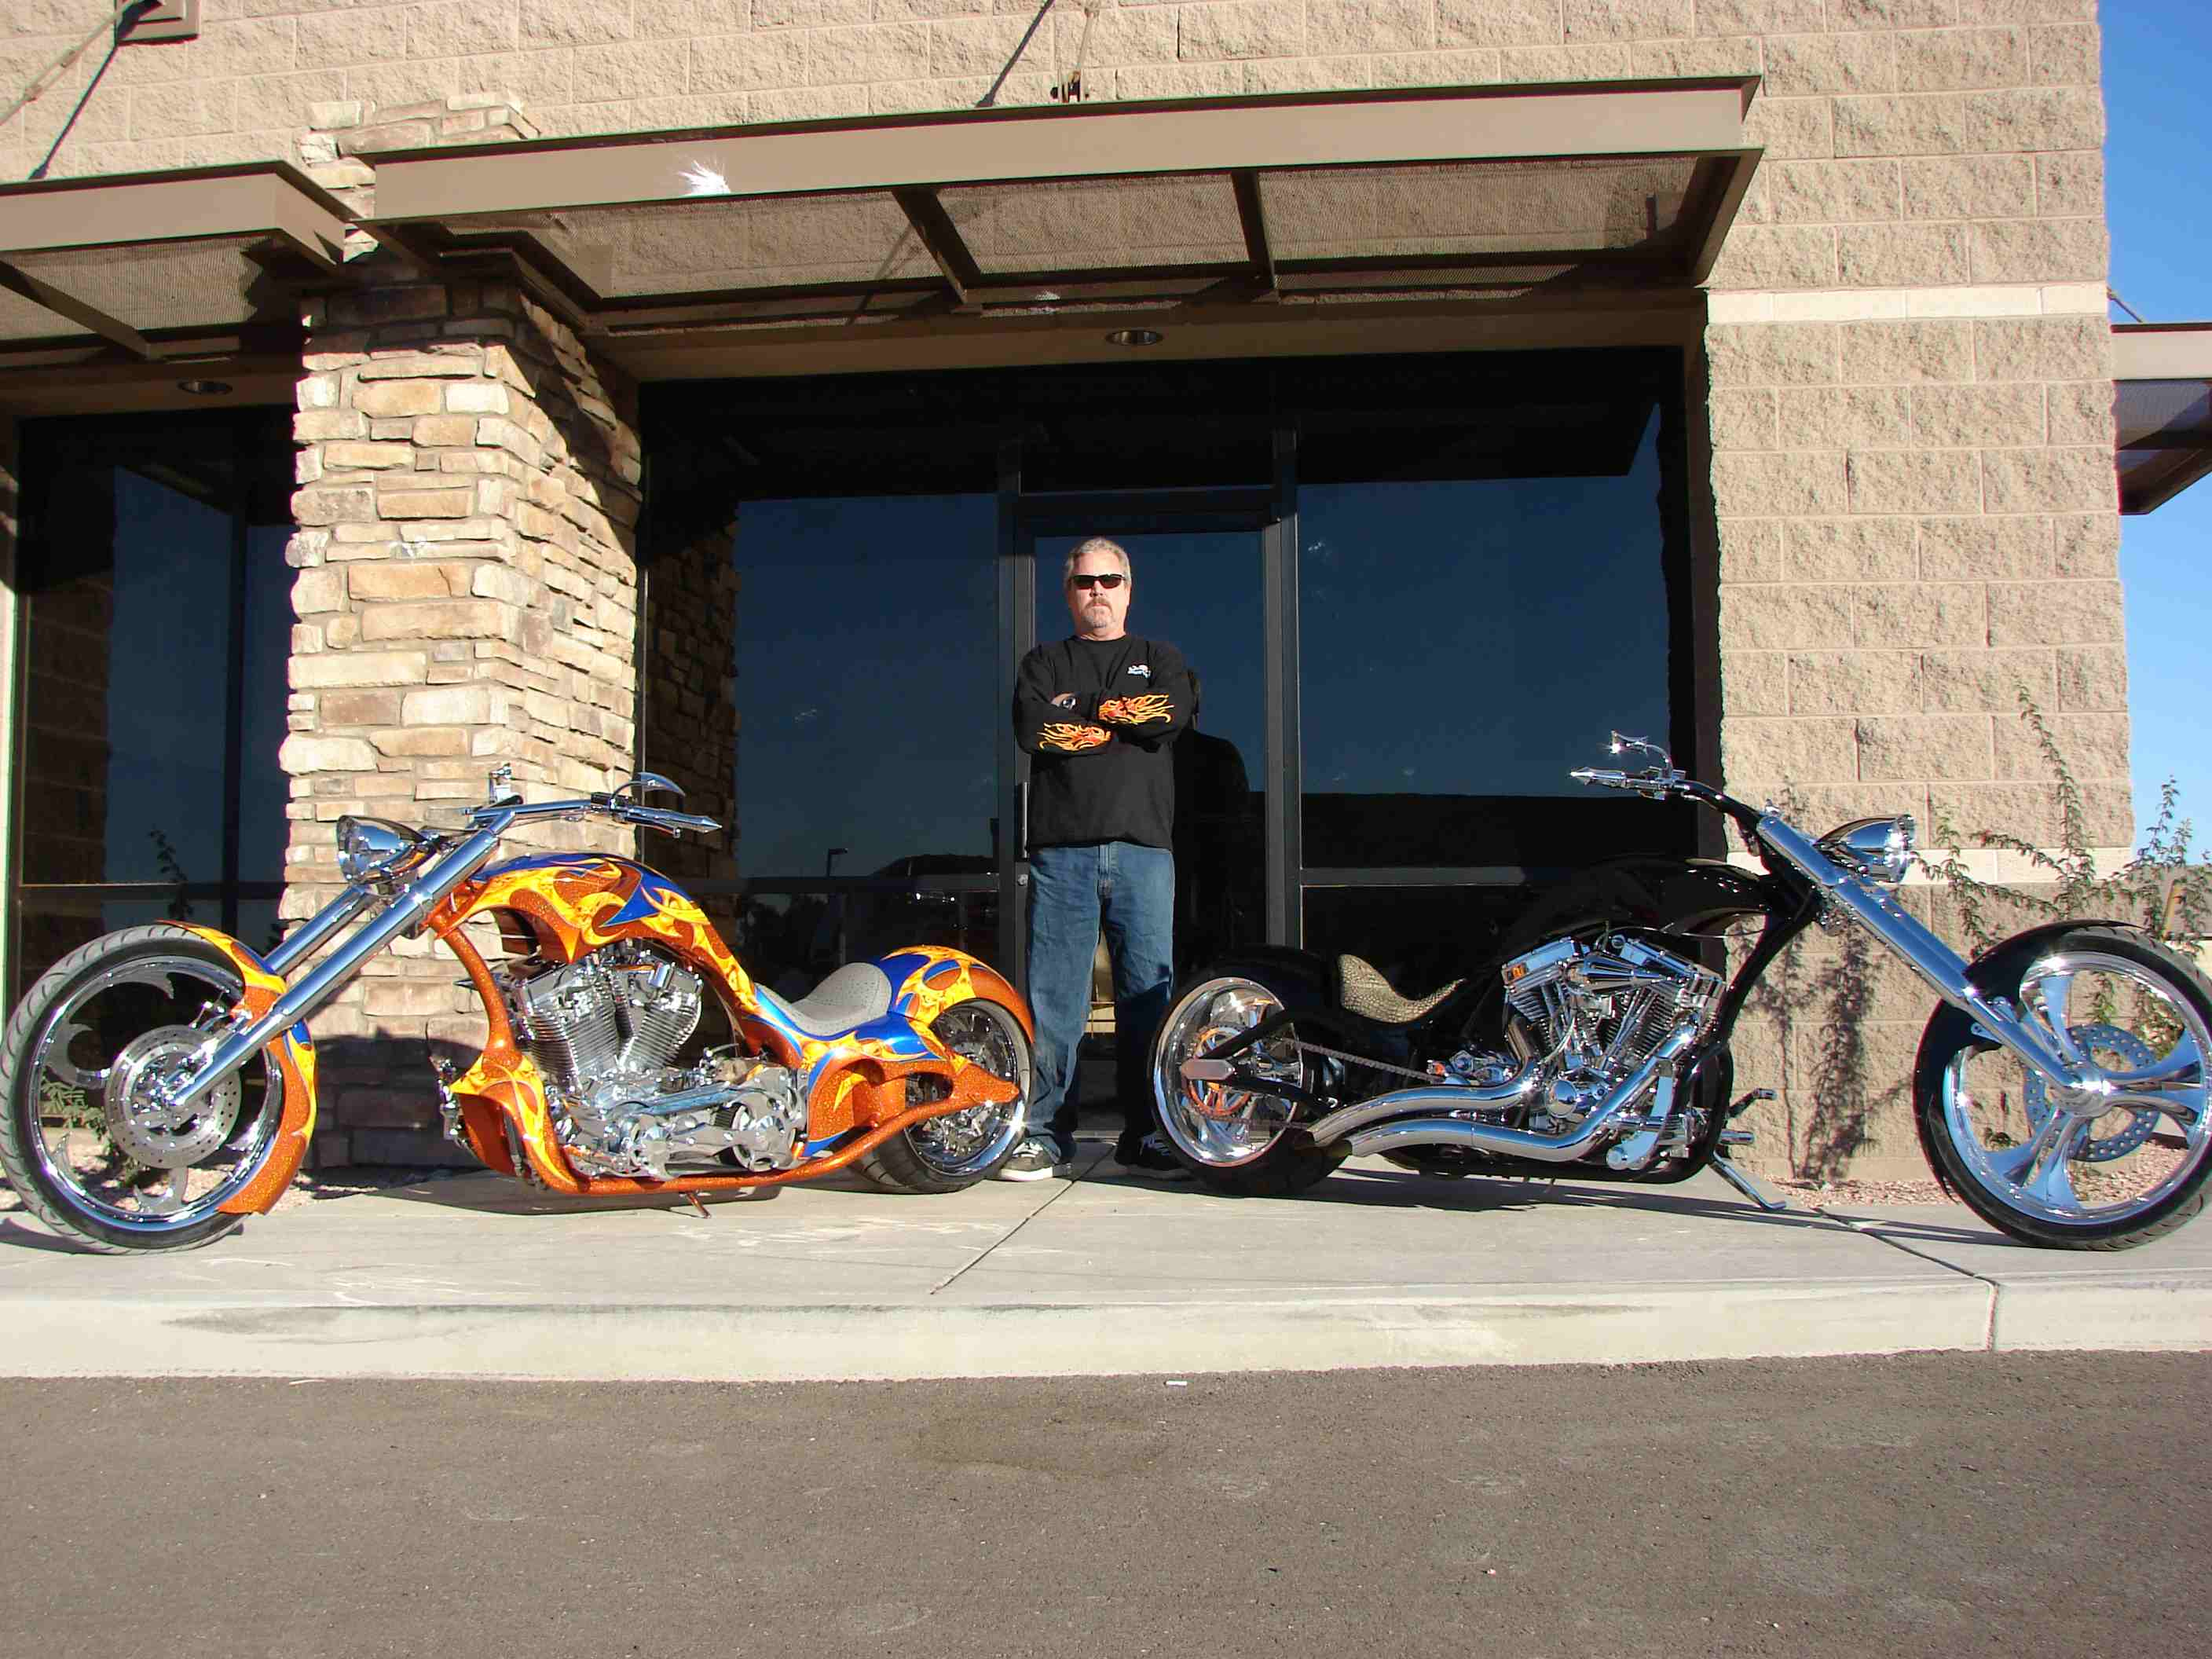 jsr custom builds the sickest custom chopperschopper kitsand custom gas tanks